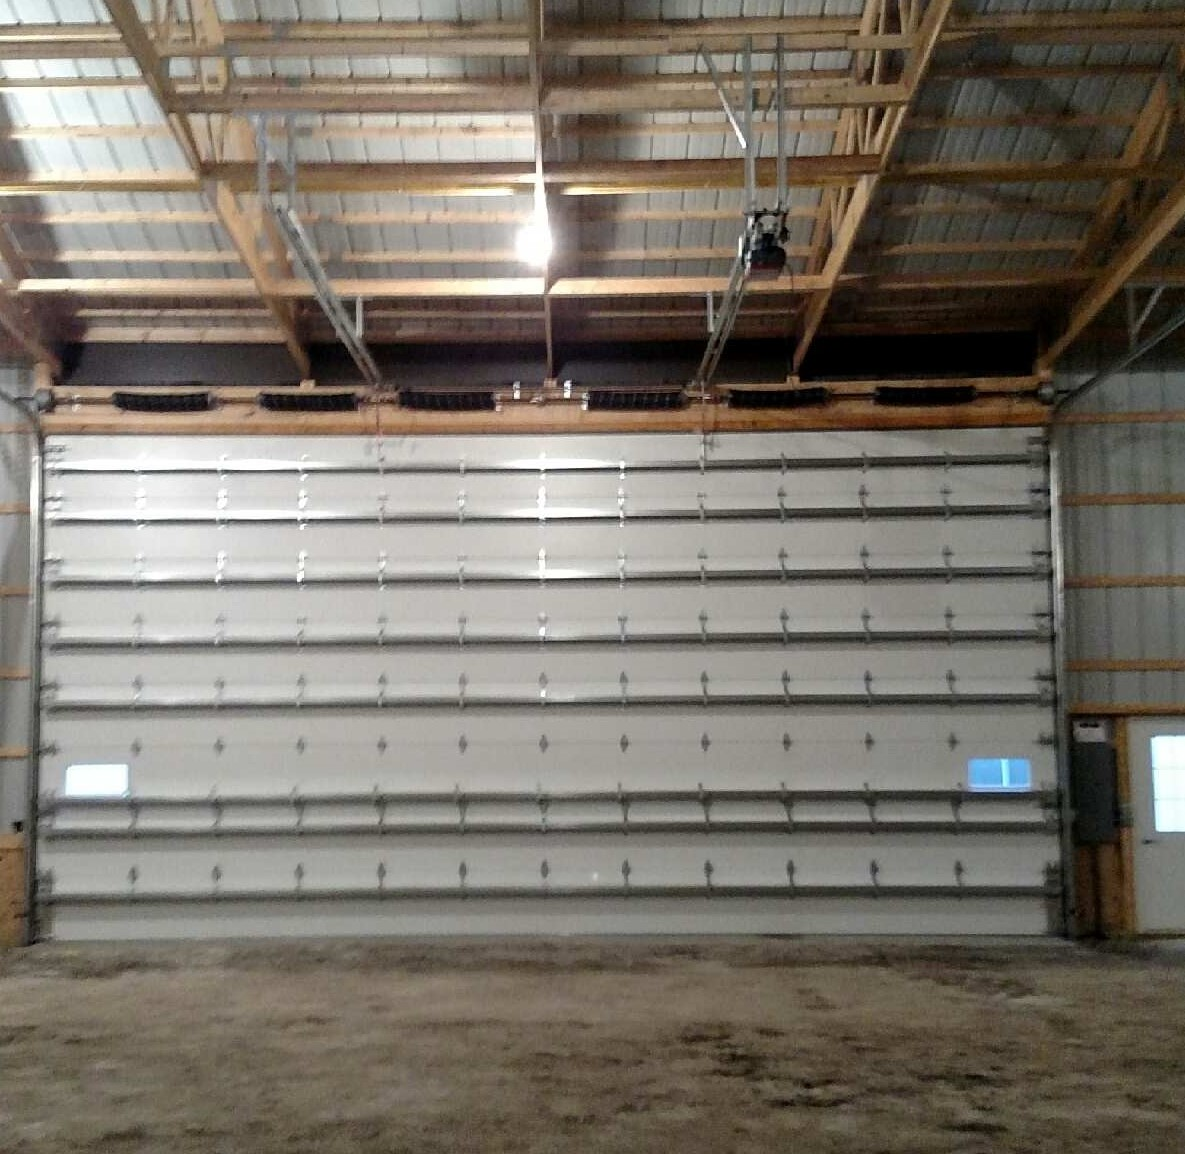 rolled doors of a warehouse